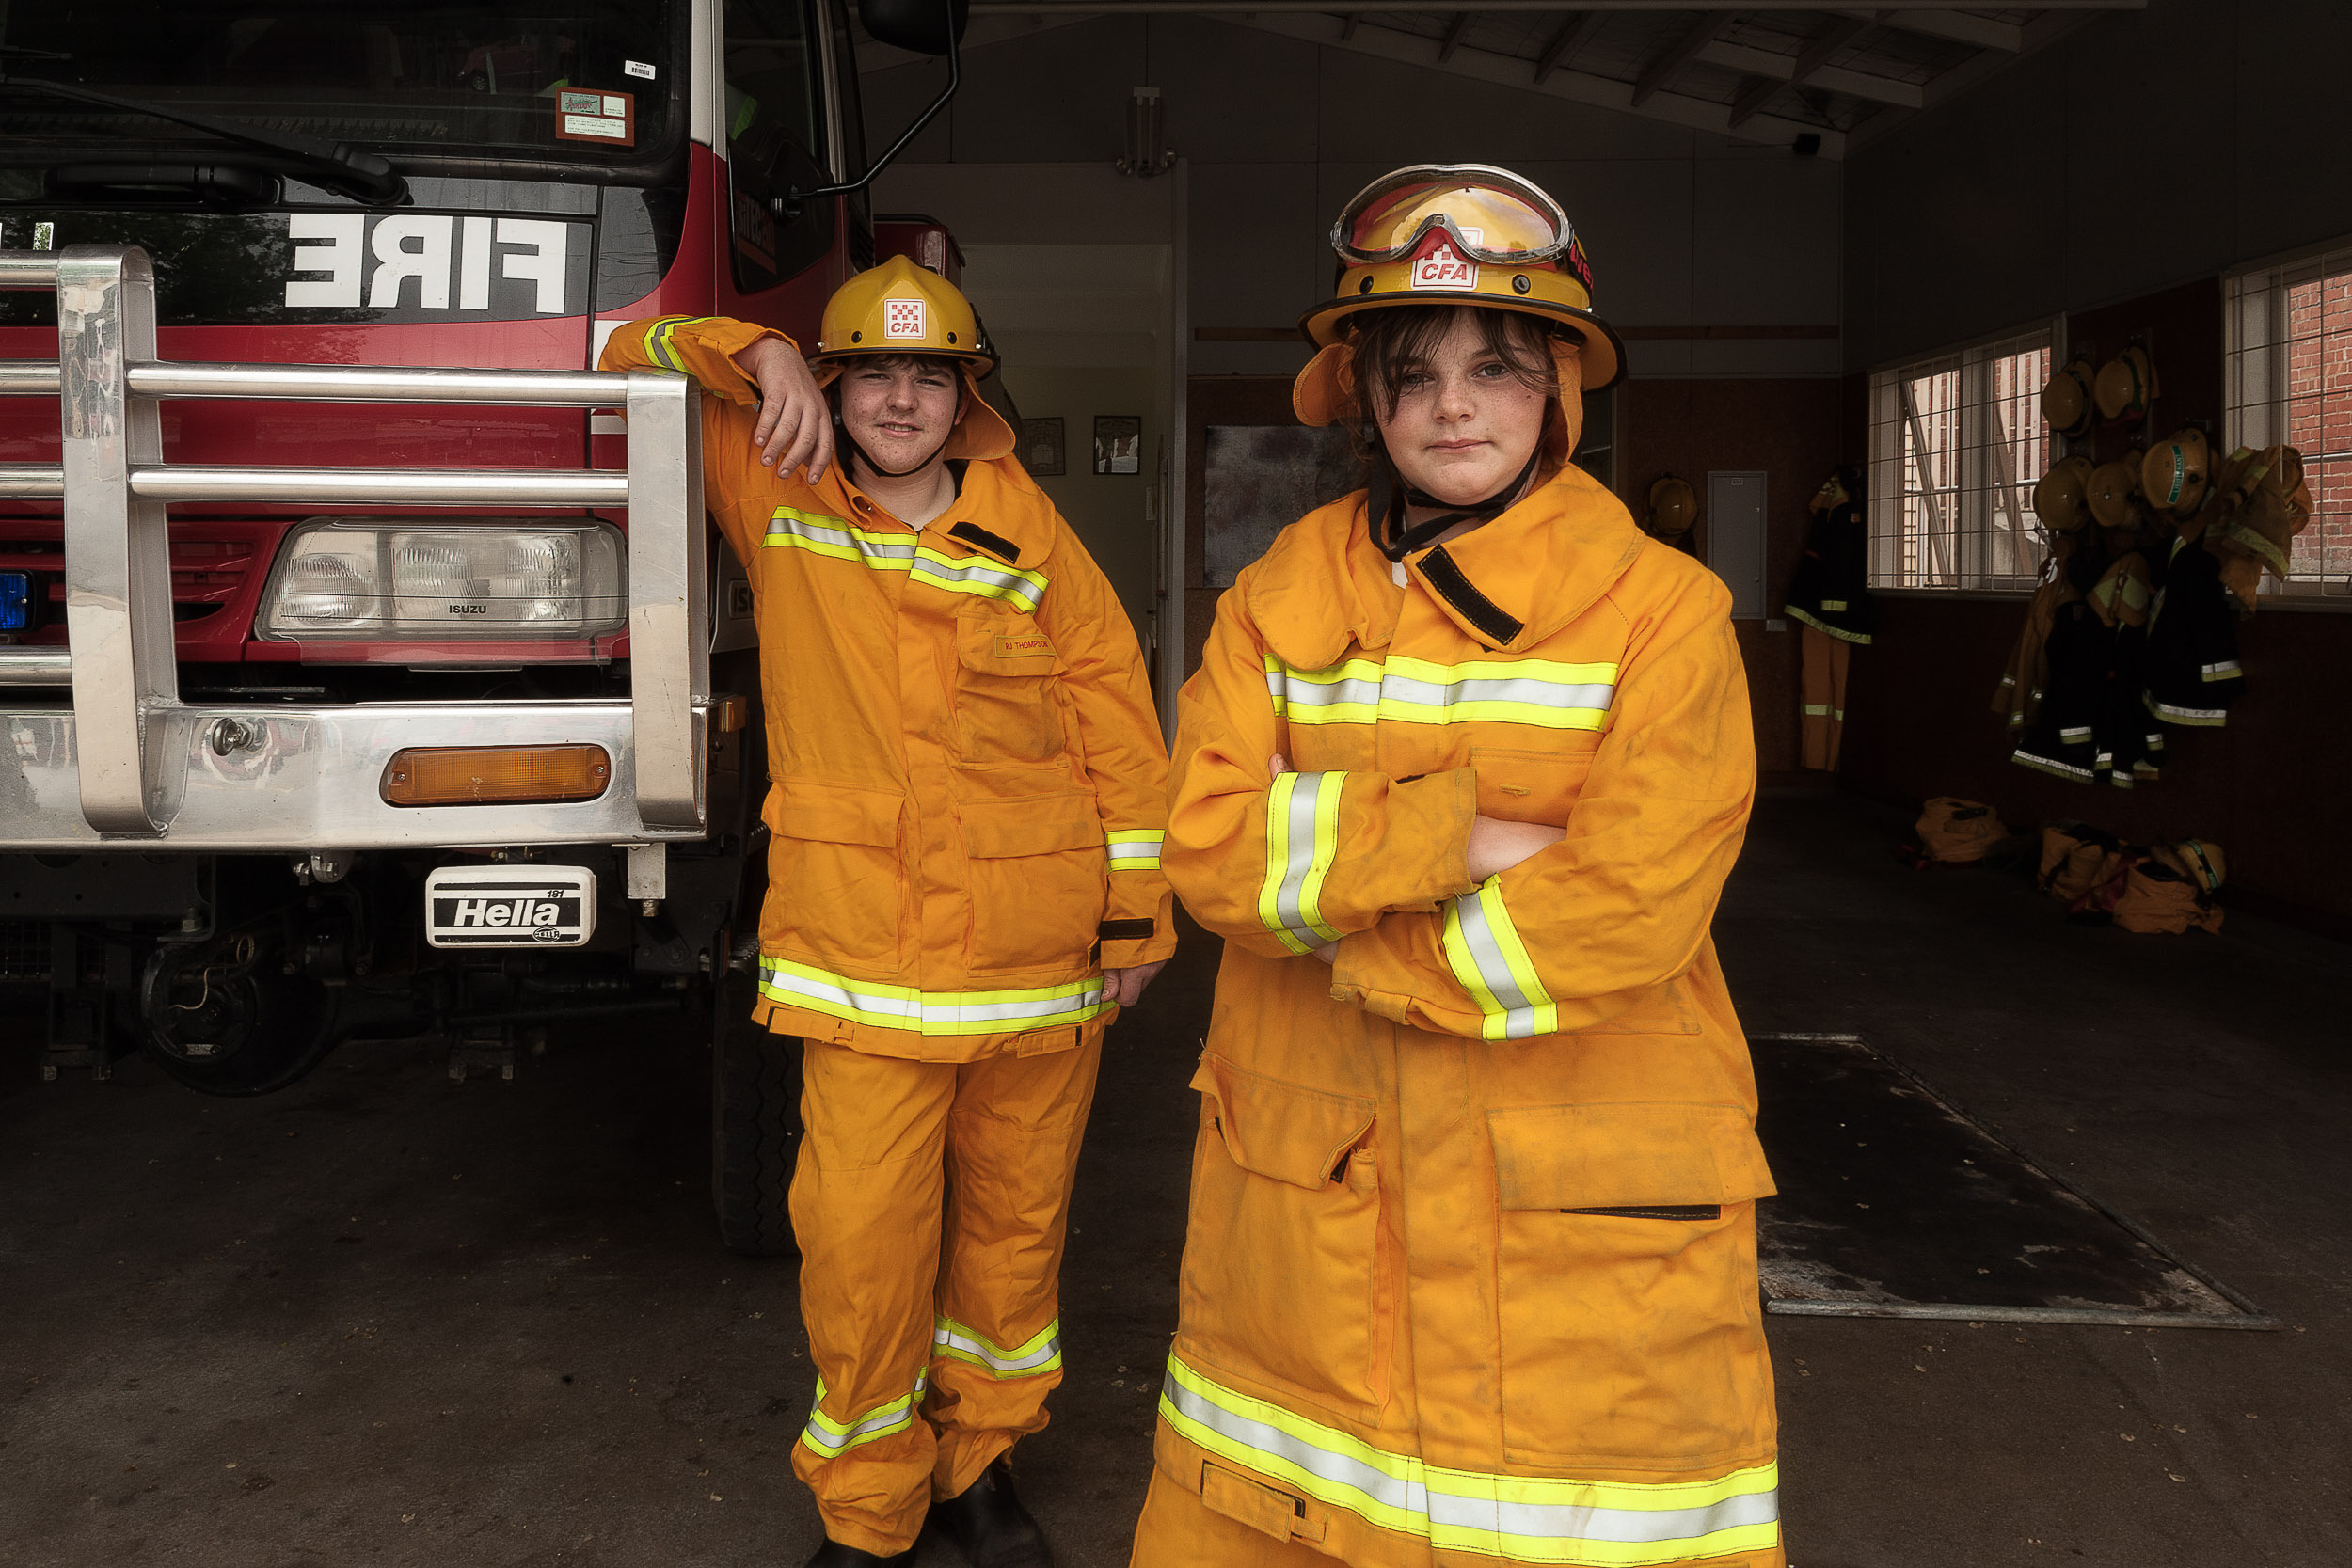 Brother and sister  volunteers  at  Maldon Fire Brigade  in  Maldon, Victoria .